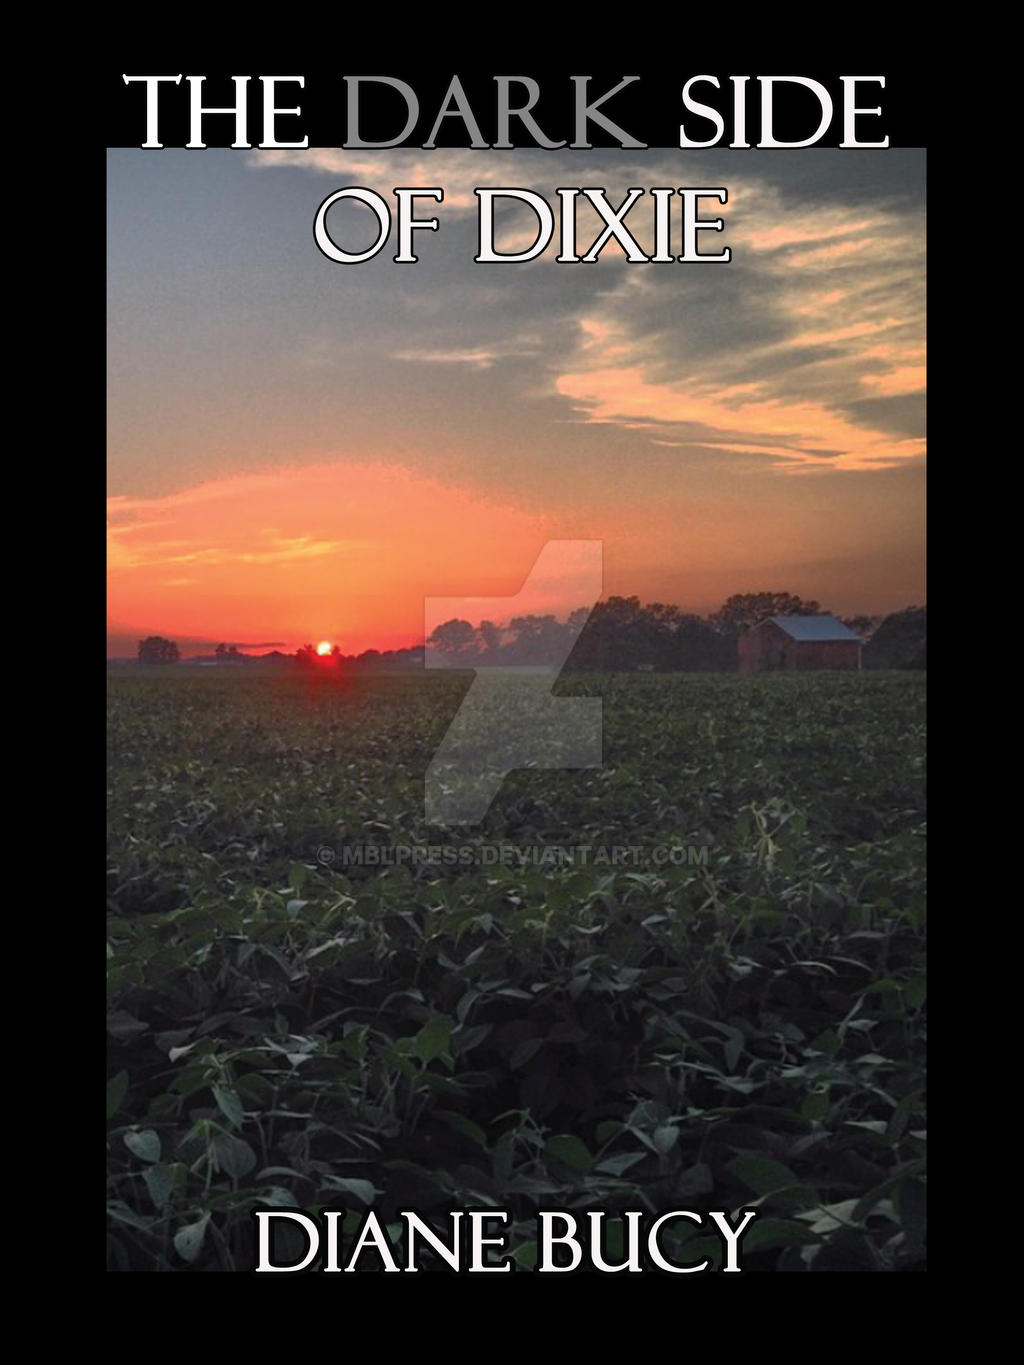 The Dark Side of Dixie by MBLPress